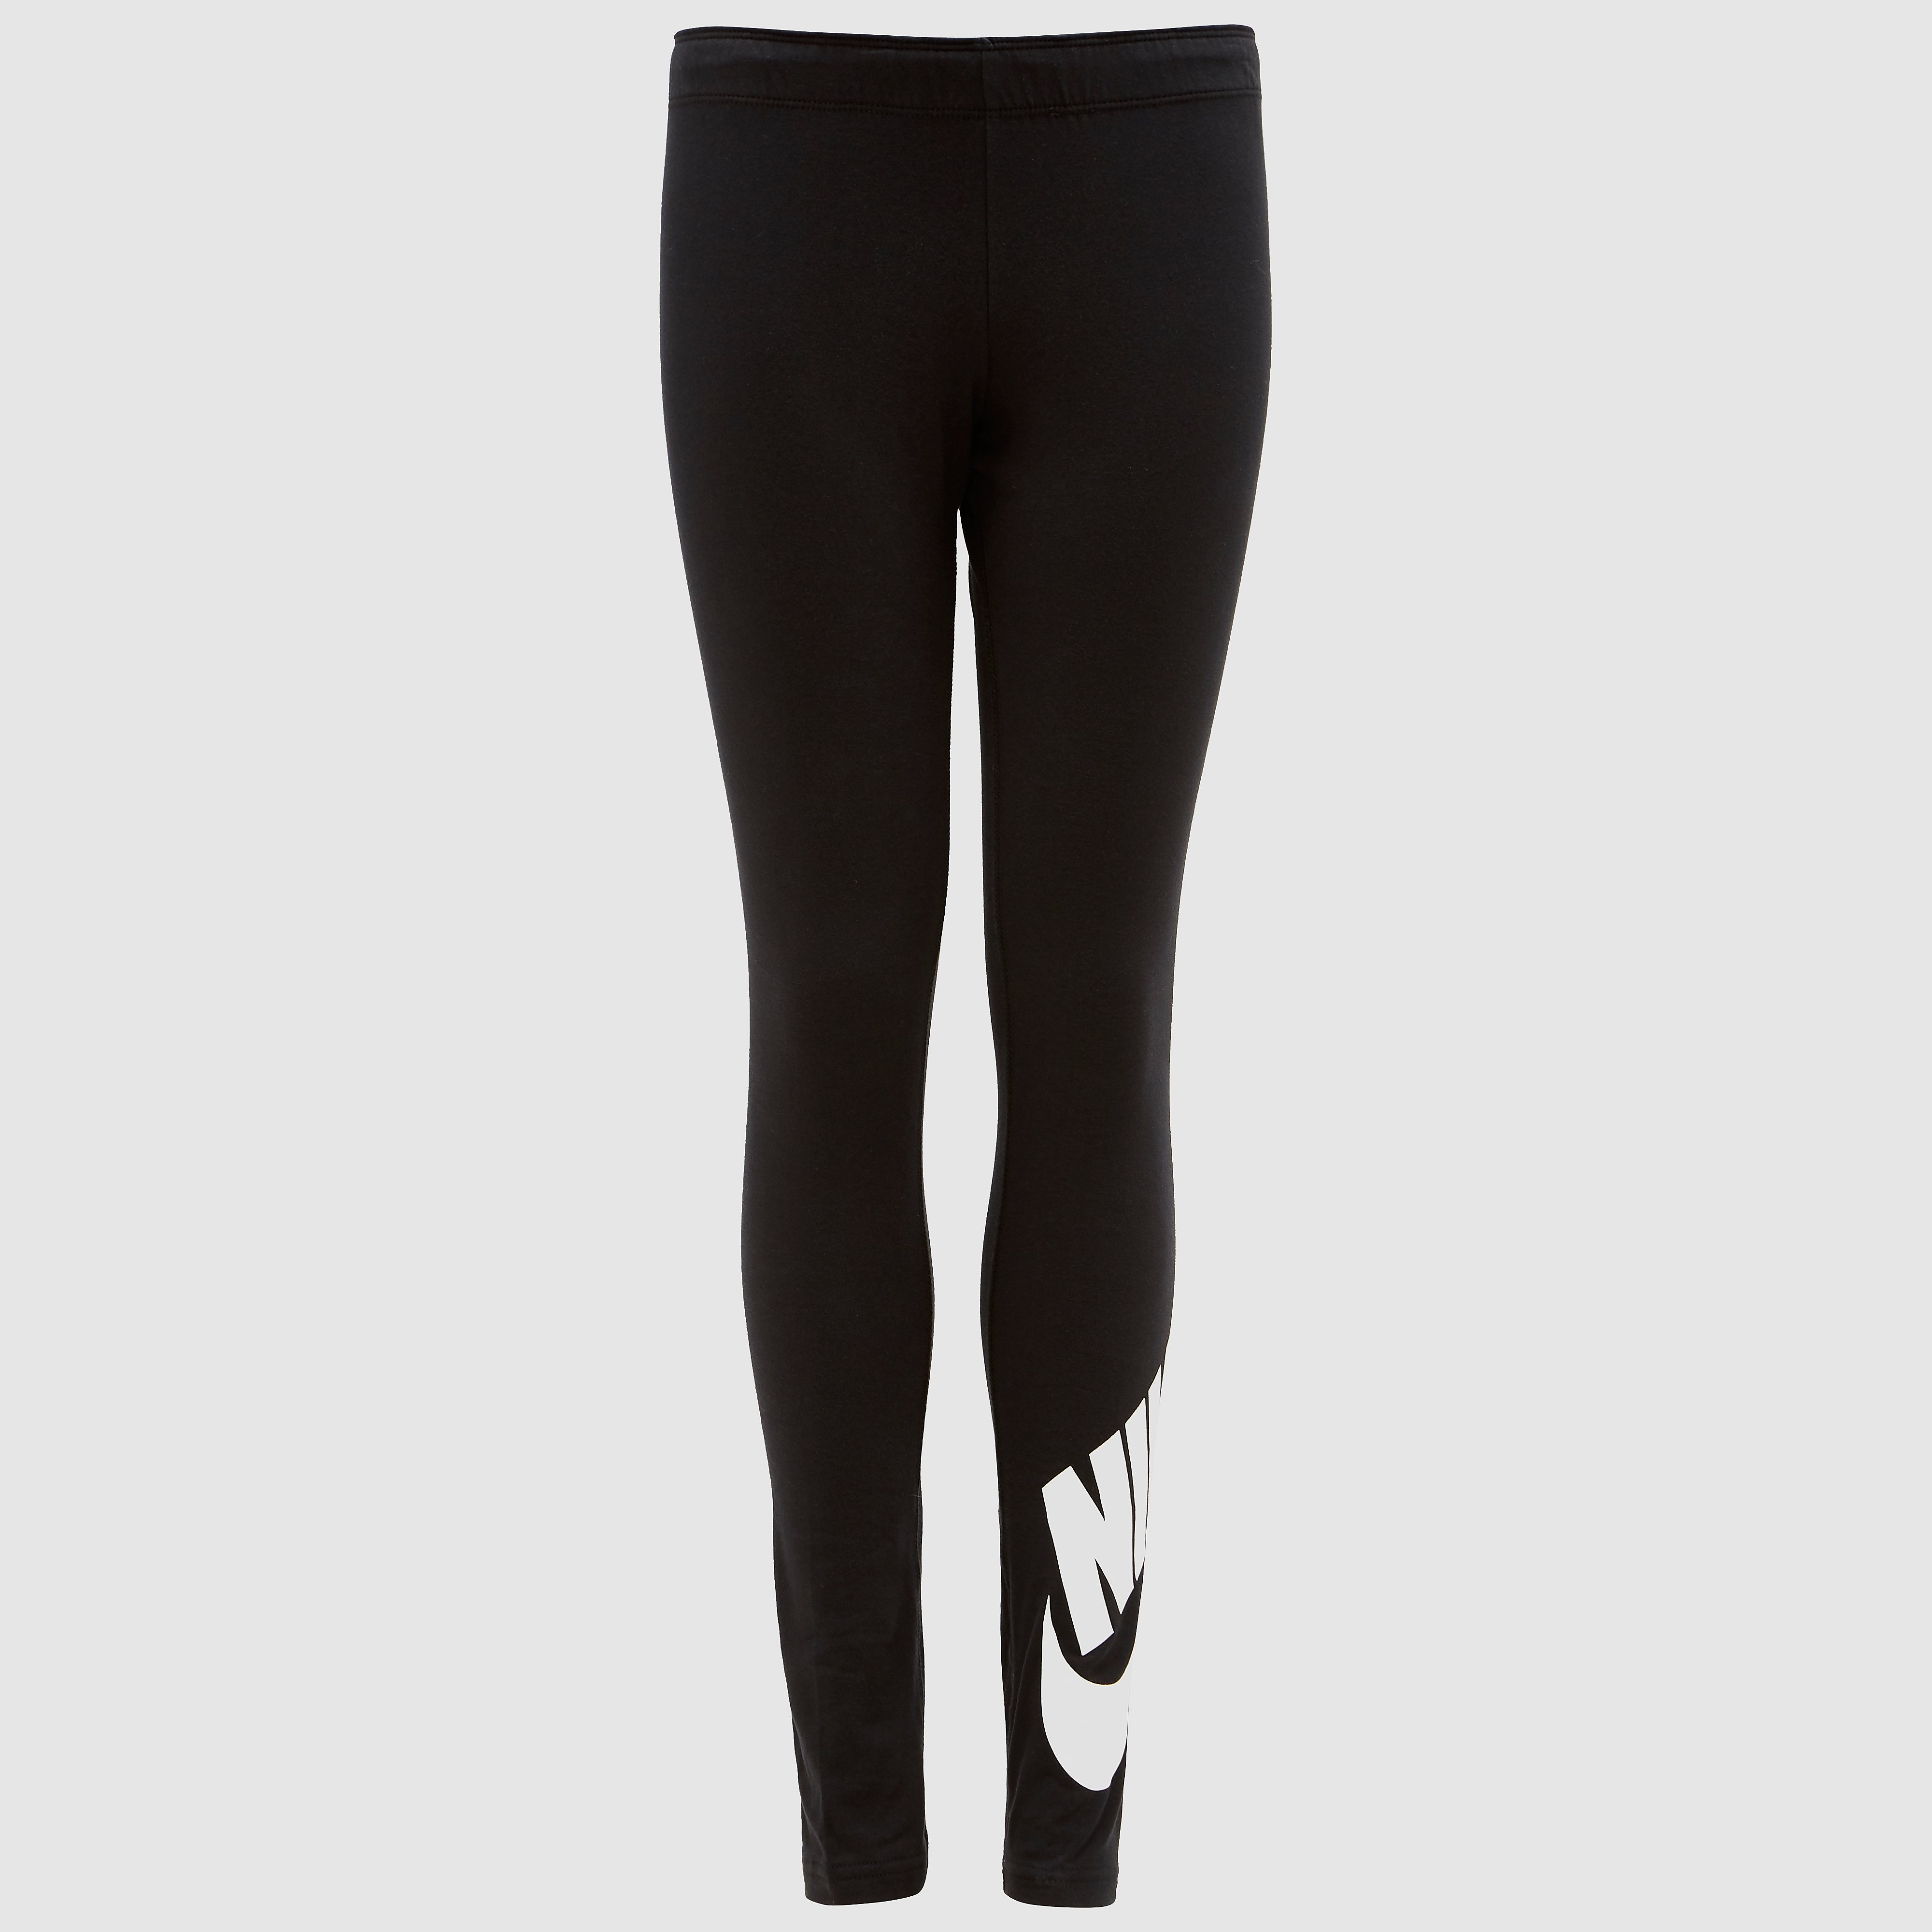 NIKE SPORTSWEAR LEG-A-SEE TIGHT JR